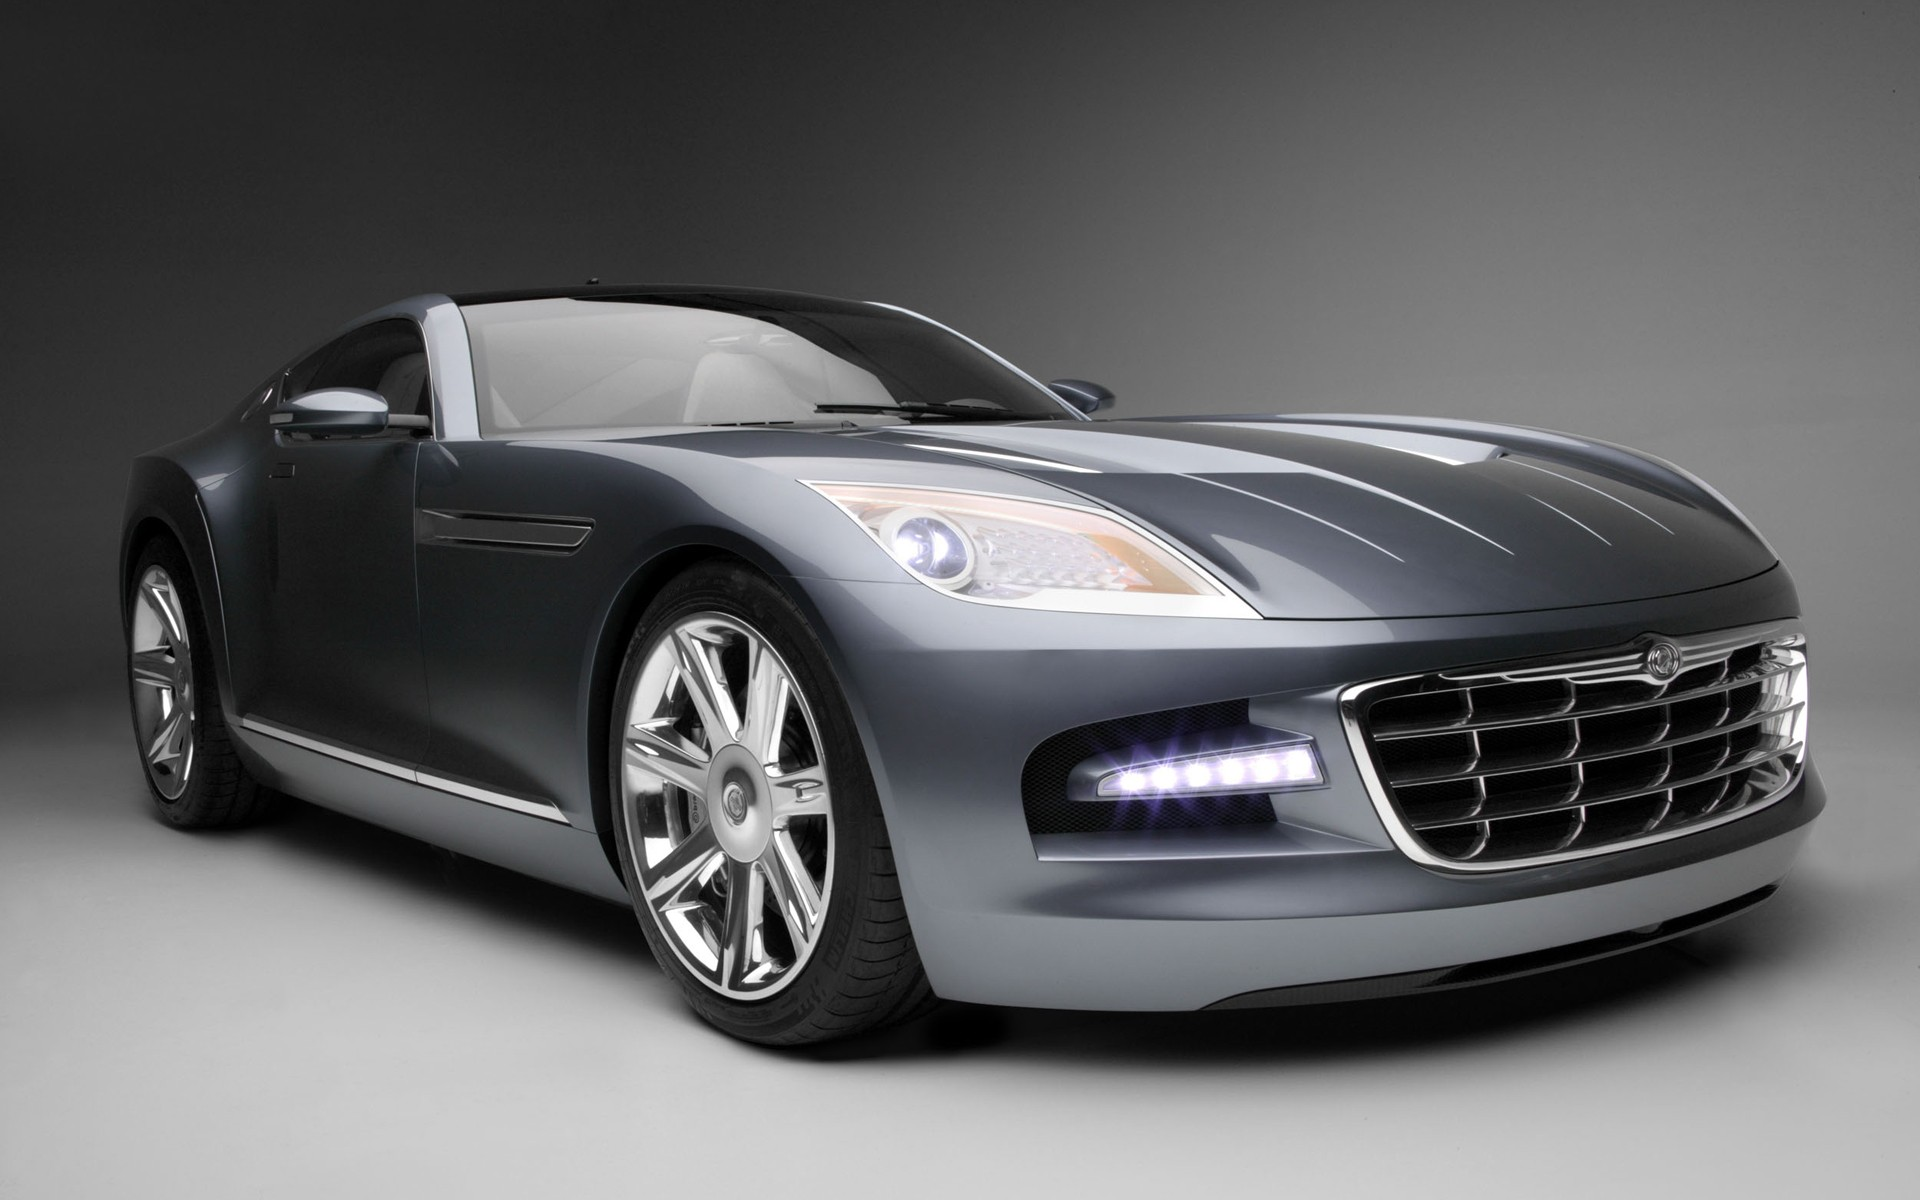 chrysler information pictures crossfire ig sports specs car